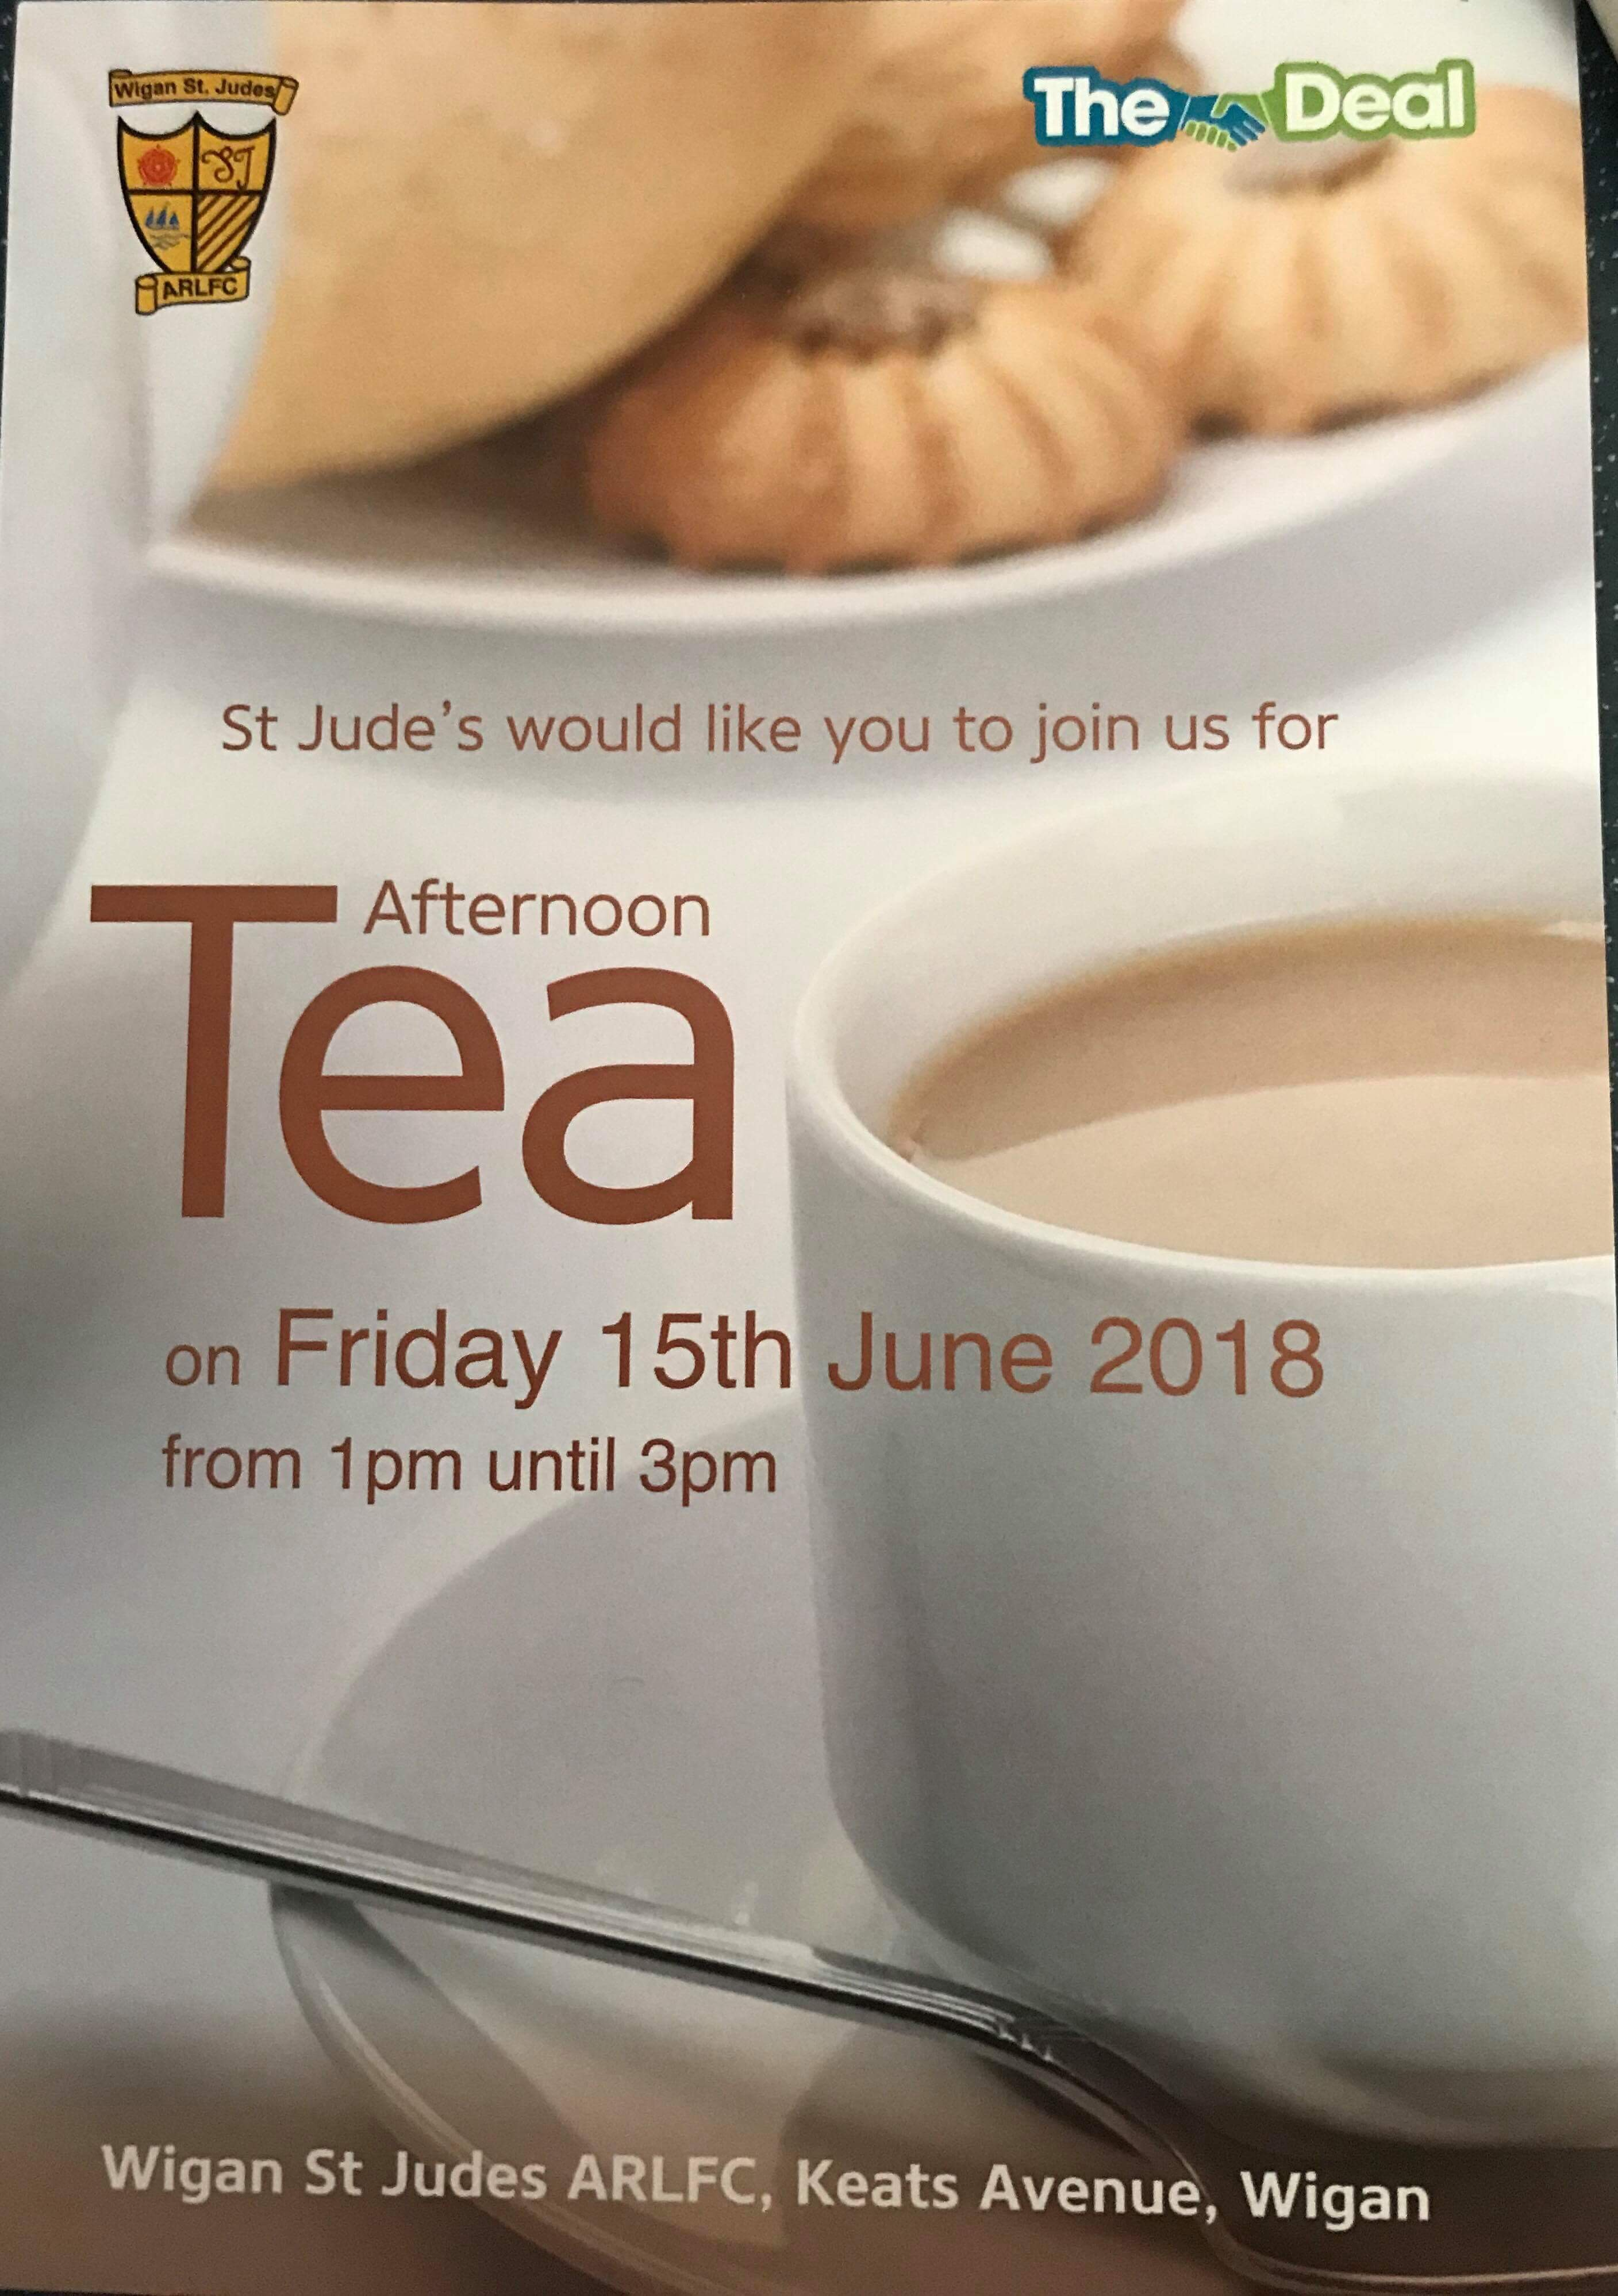 Afternoon Tea at Wigan St Judes